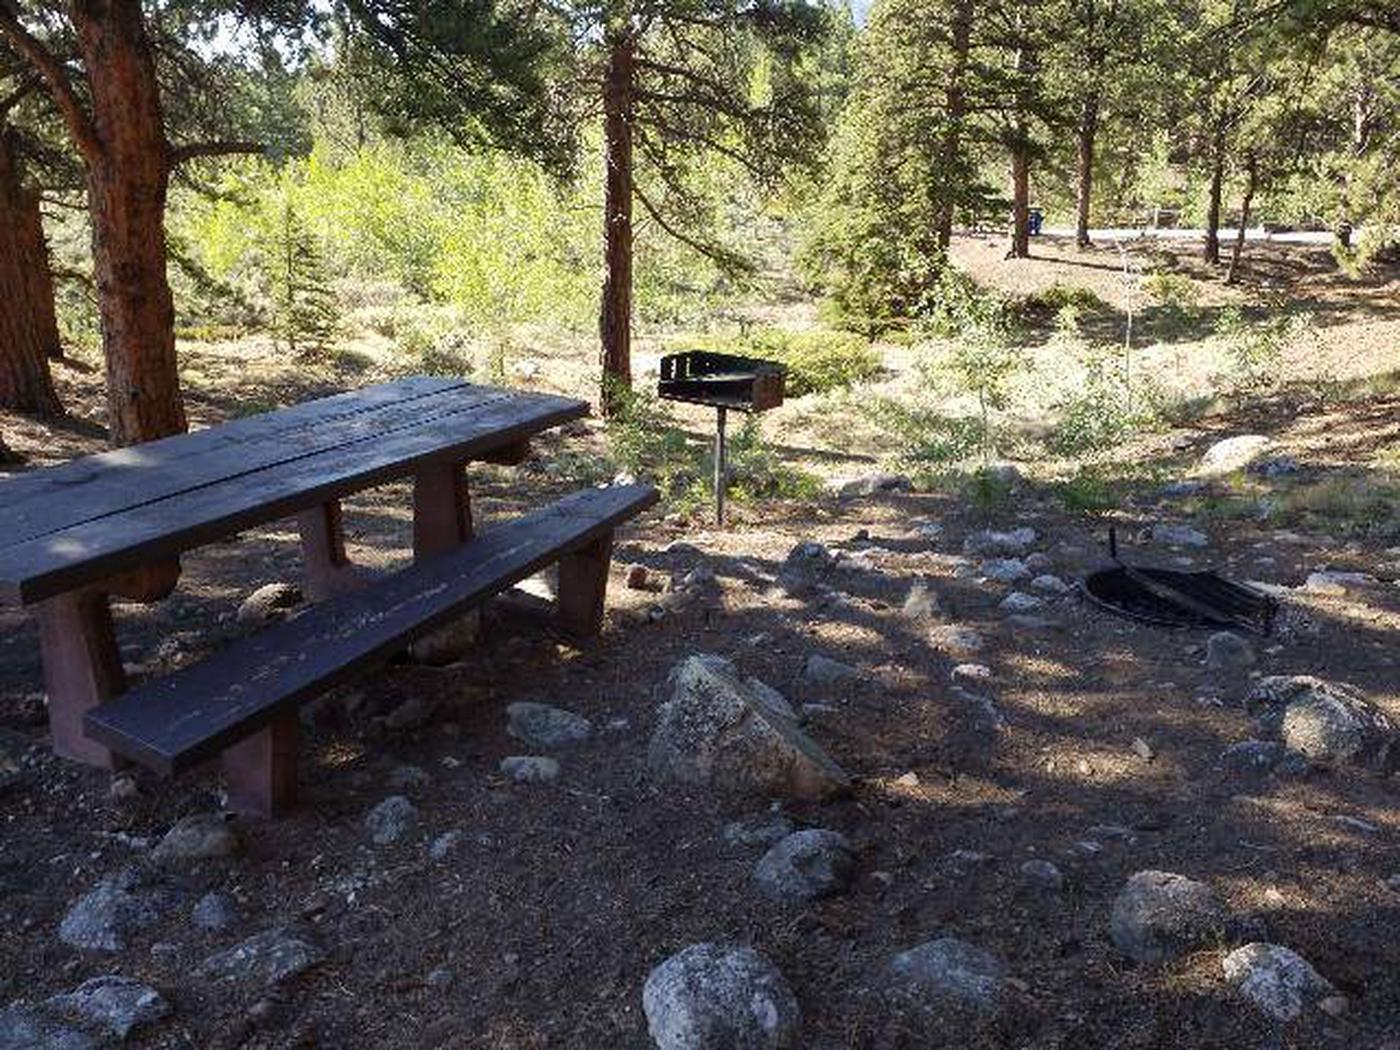 White Star Campground, site 60 picnic table, fire ring, and grill